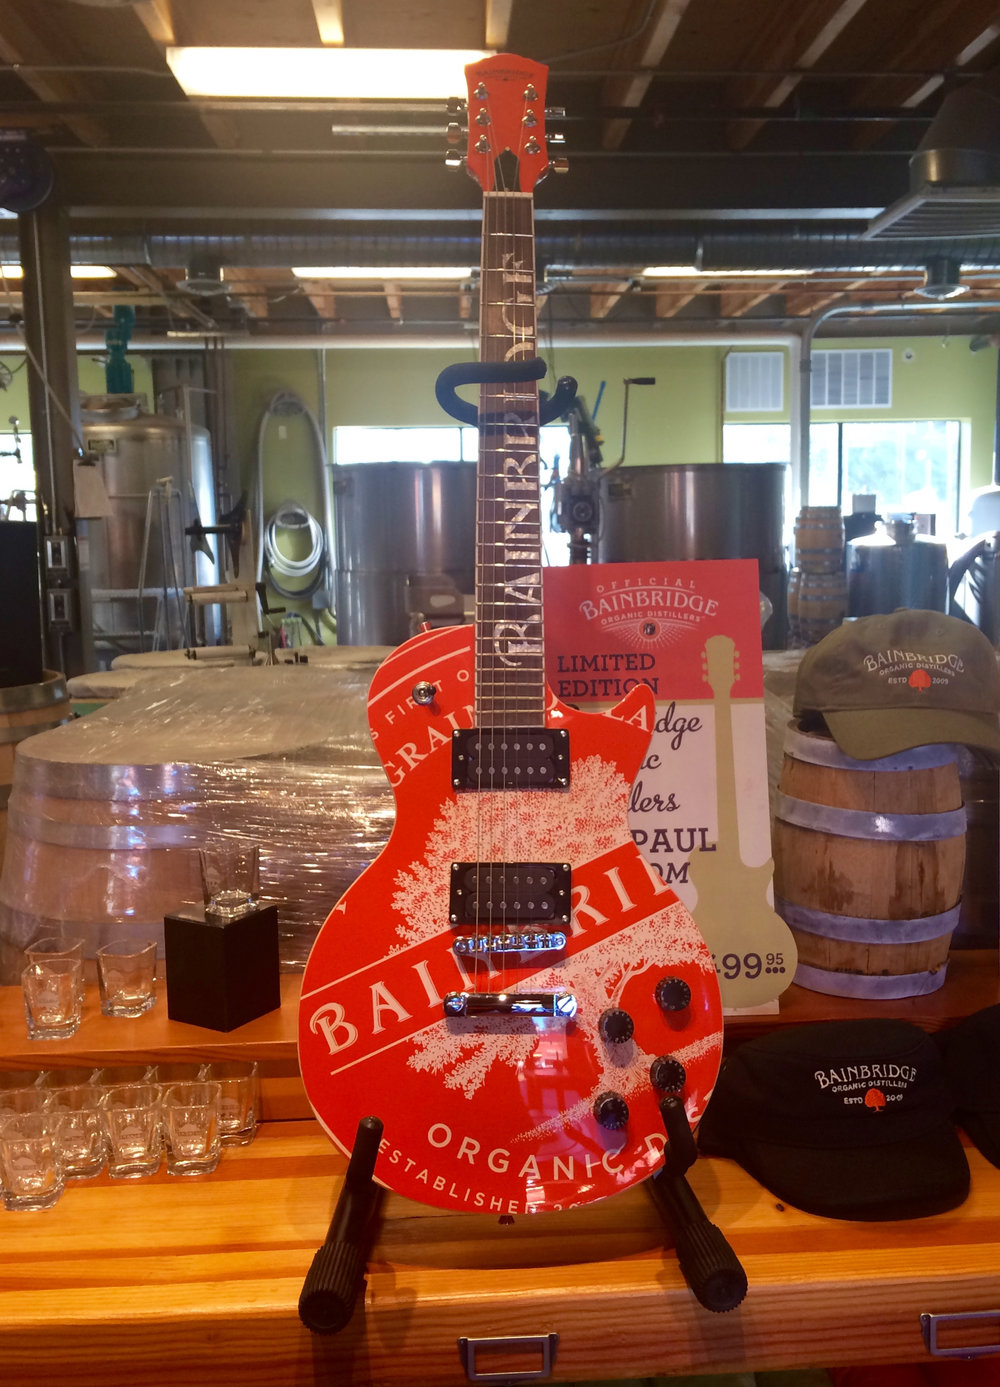 I don't think this amazing guitar is for sale but, if it is, my husband has probably already got dibs on it.